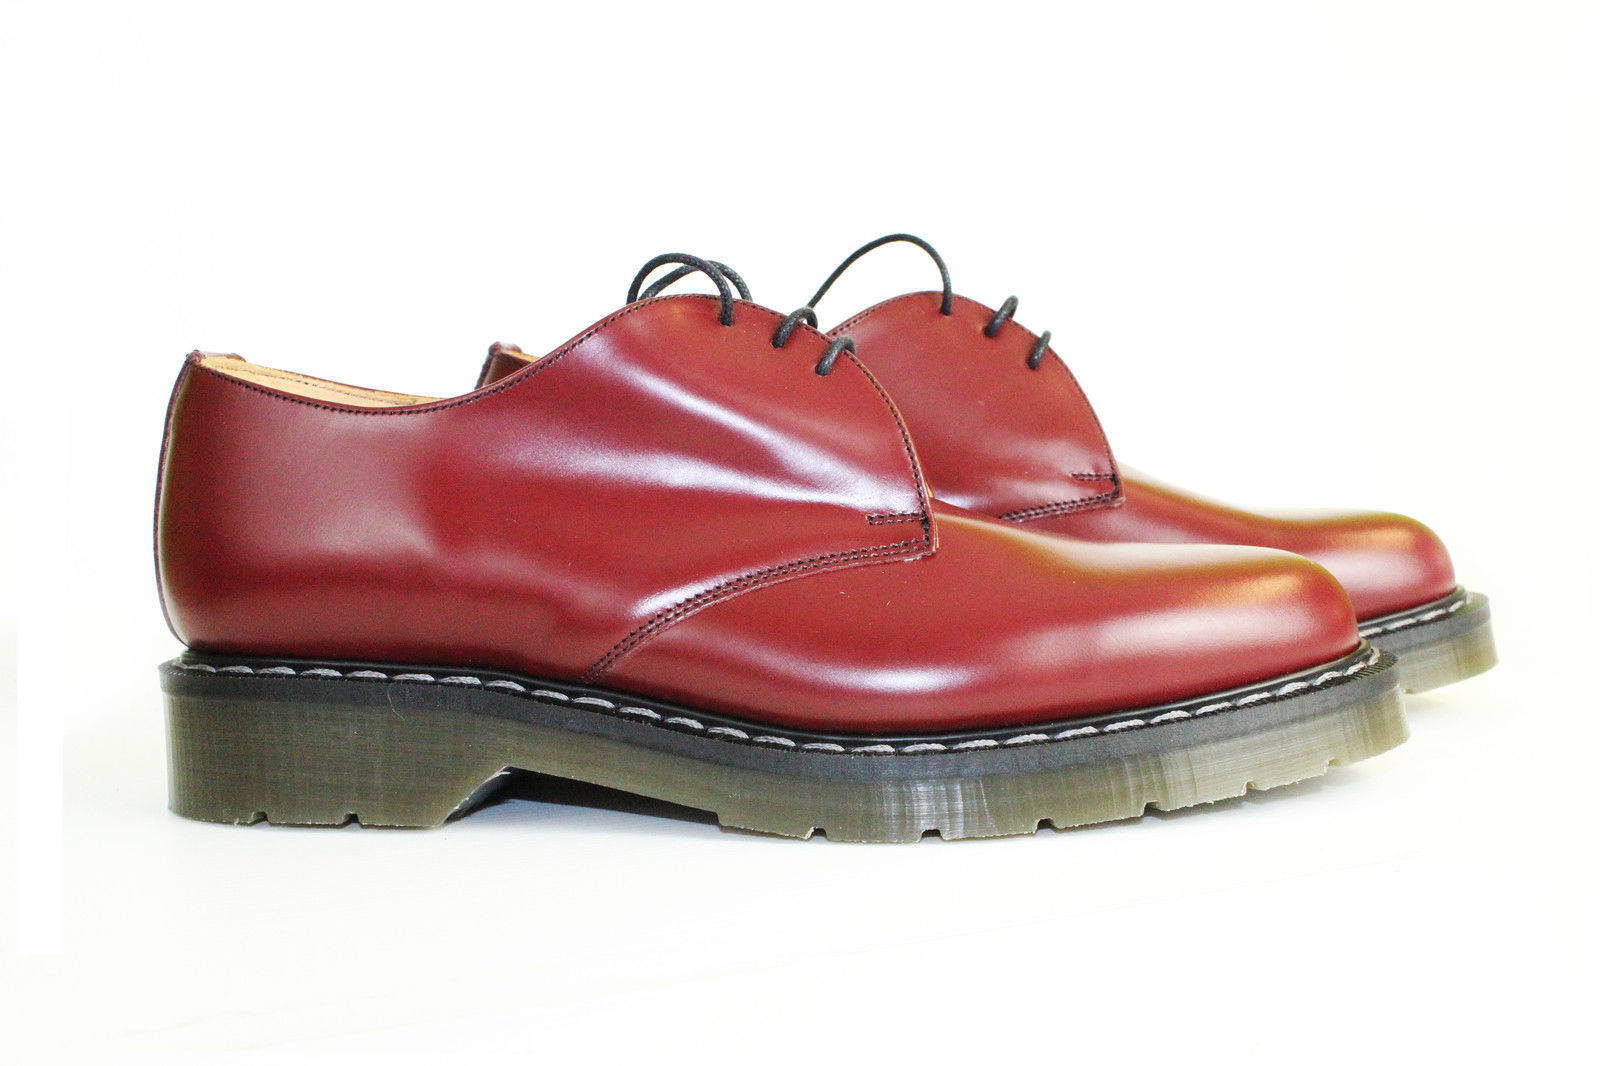 NORTHAMPTON air MADE non-safety cherry ROT air NORTHAMPTON cushion 3-eye gibson shoe 7-11 22bd6f